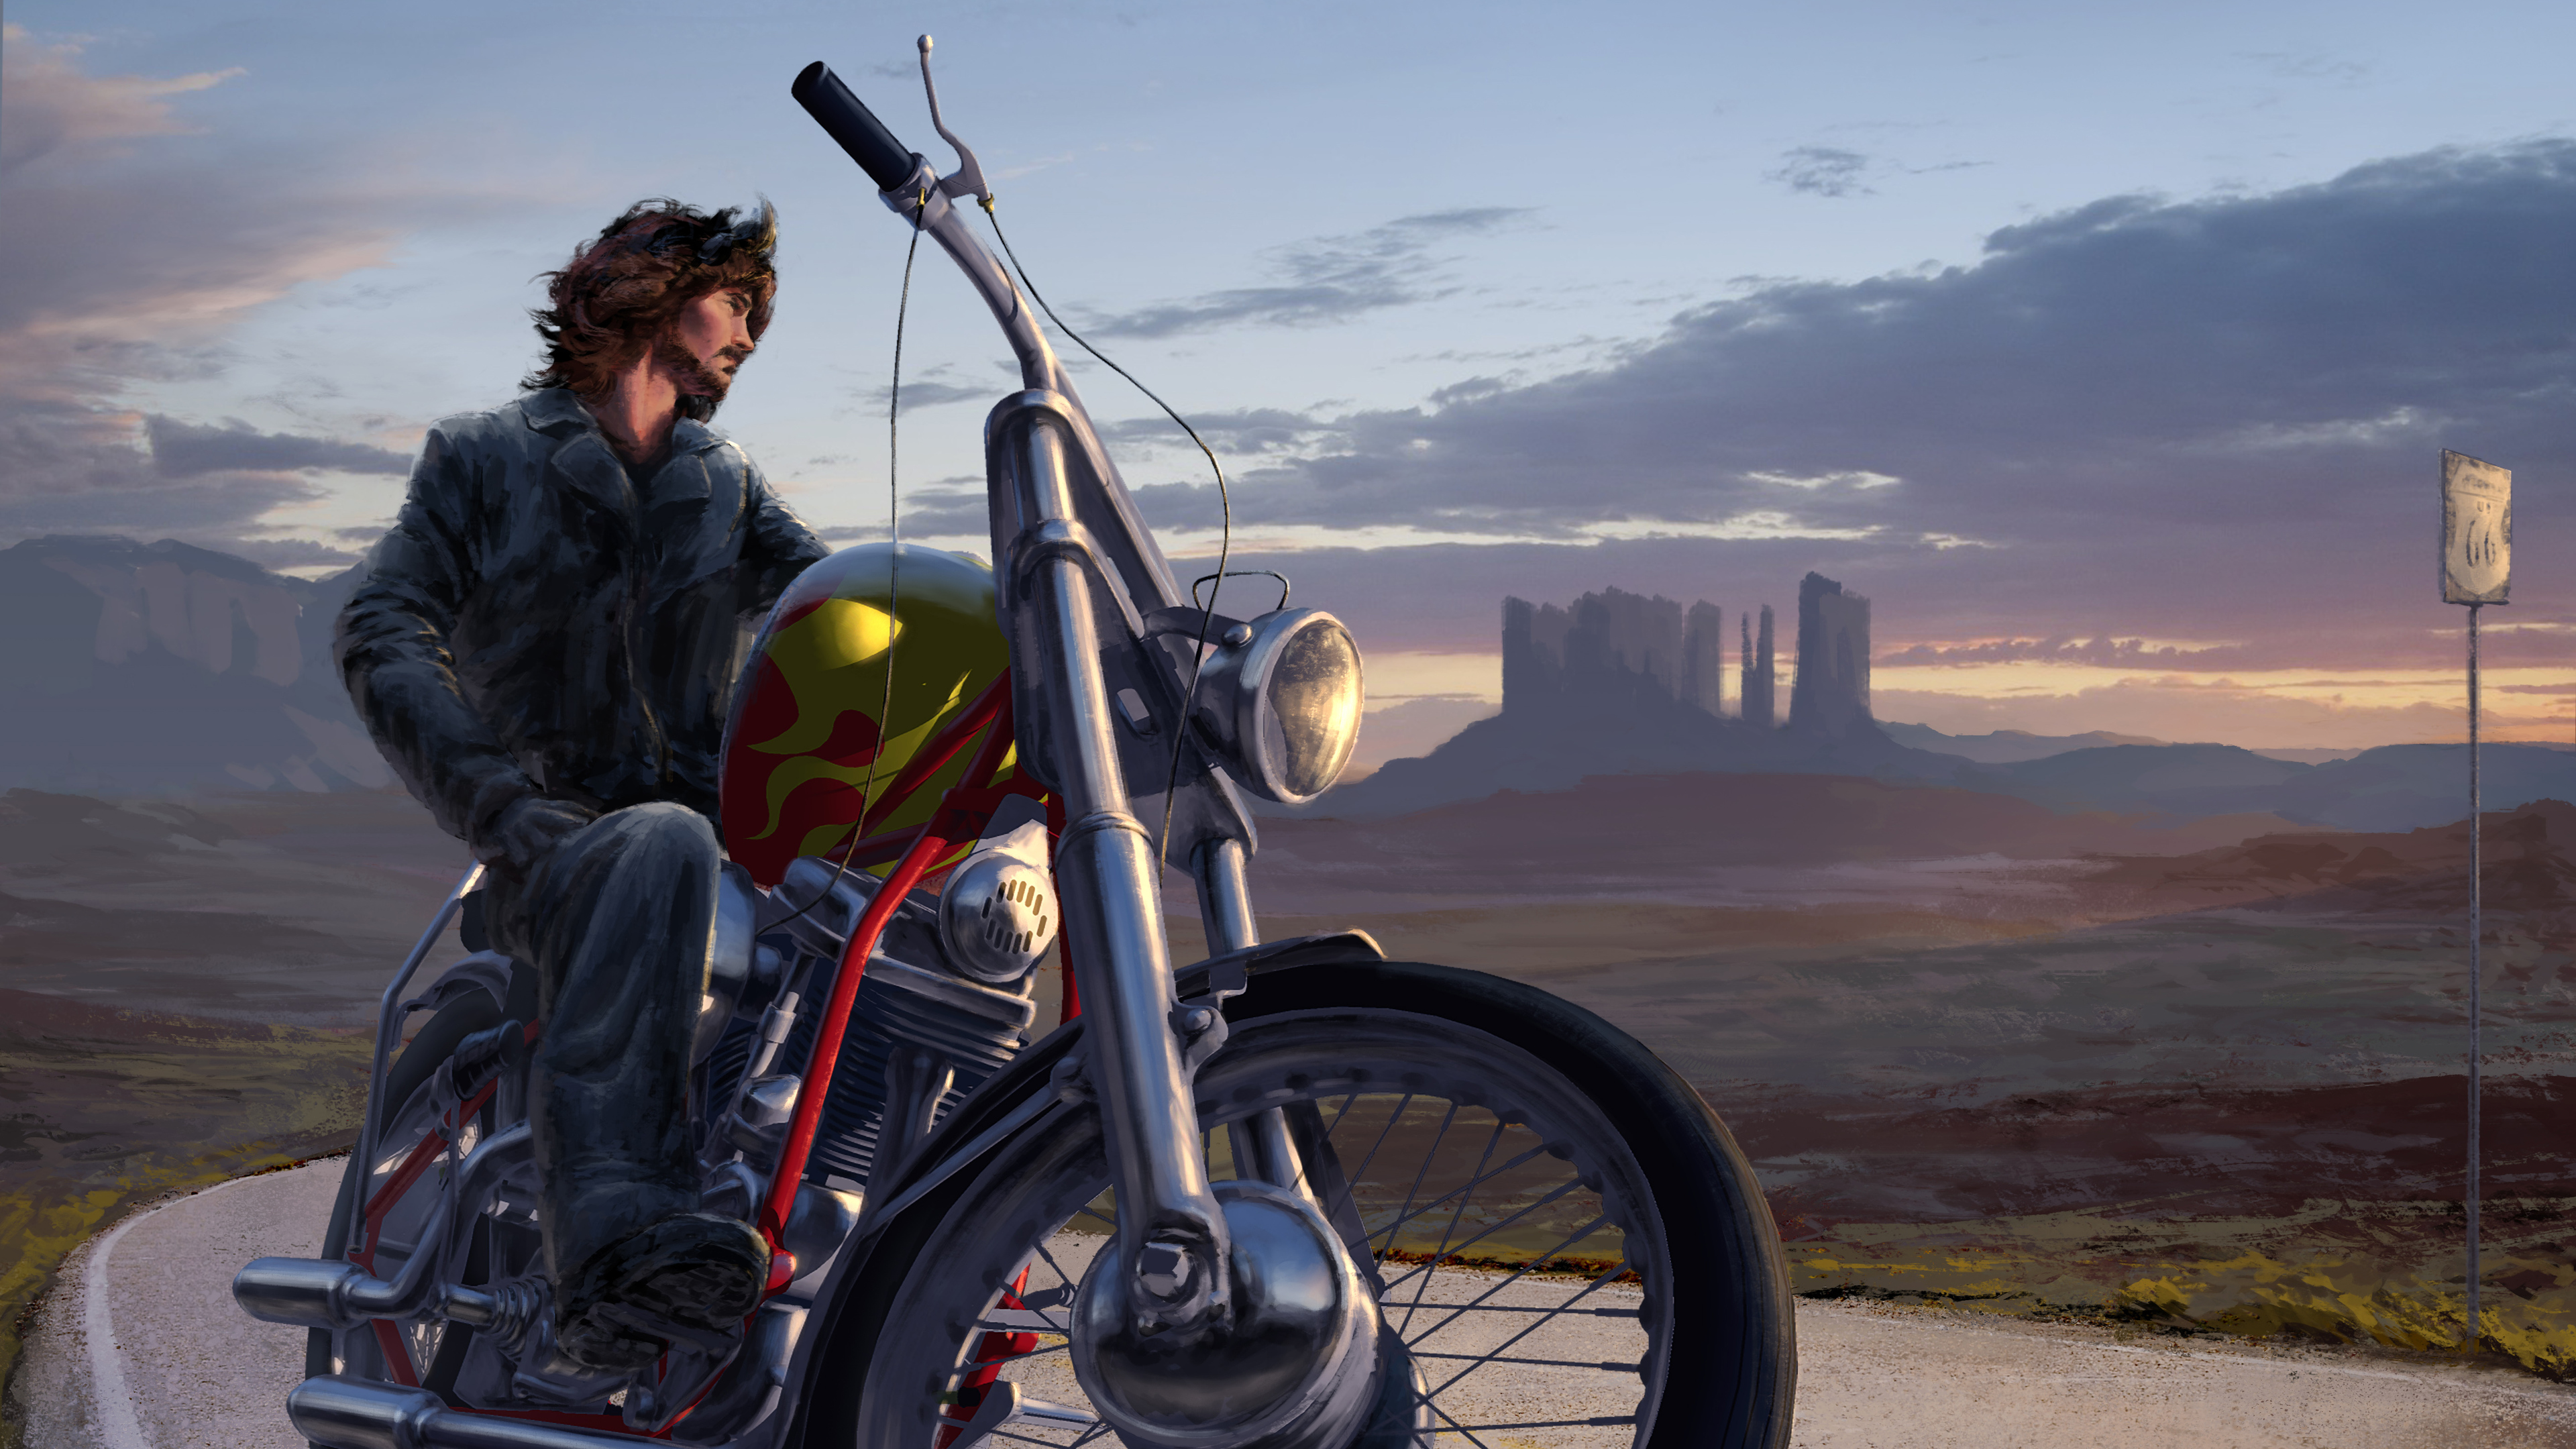 bike rider digital art 4k 1551642034 - Bike Rider Digital Art 4k - hd-wallpapers, digital art wallpapers, deviantart wallpapers, bikes wallpapers, biker wallpapers, artwork wallpapers, artist wallpapers, 5k wallpapers, 4k-wallpapers